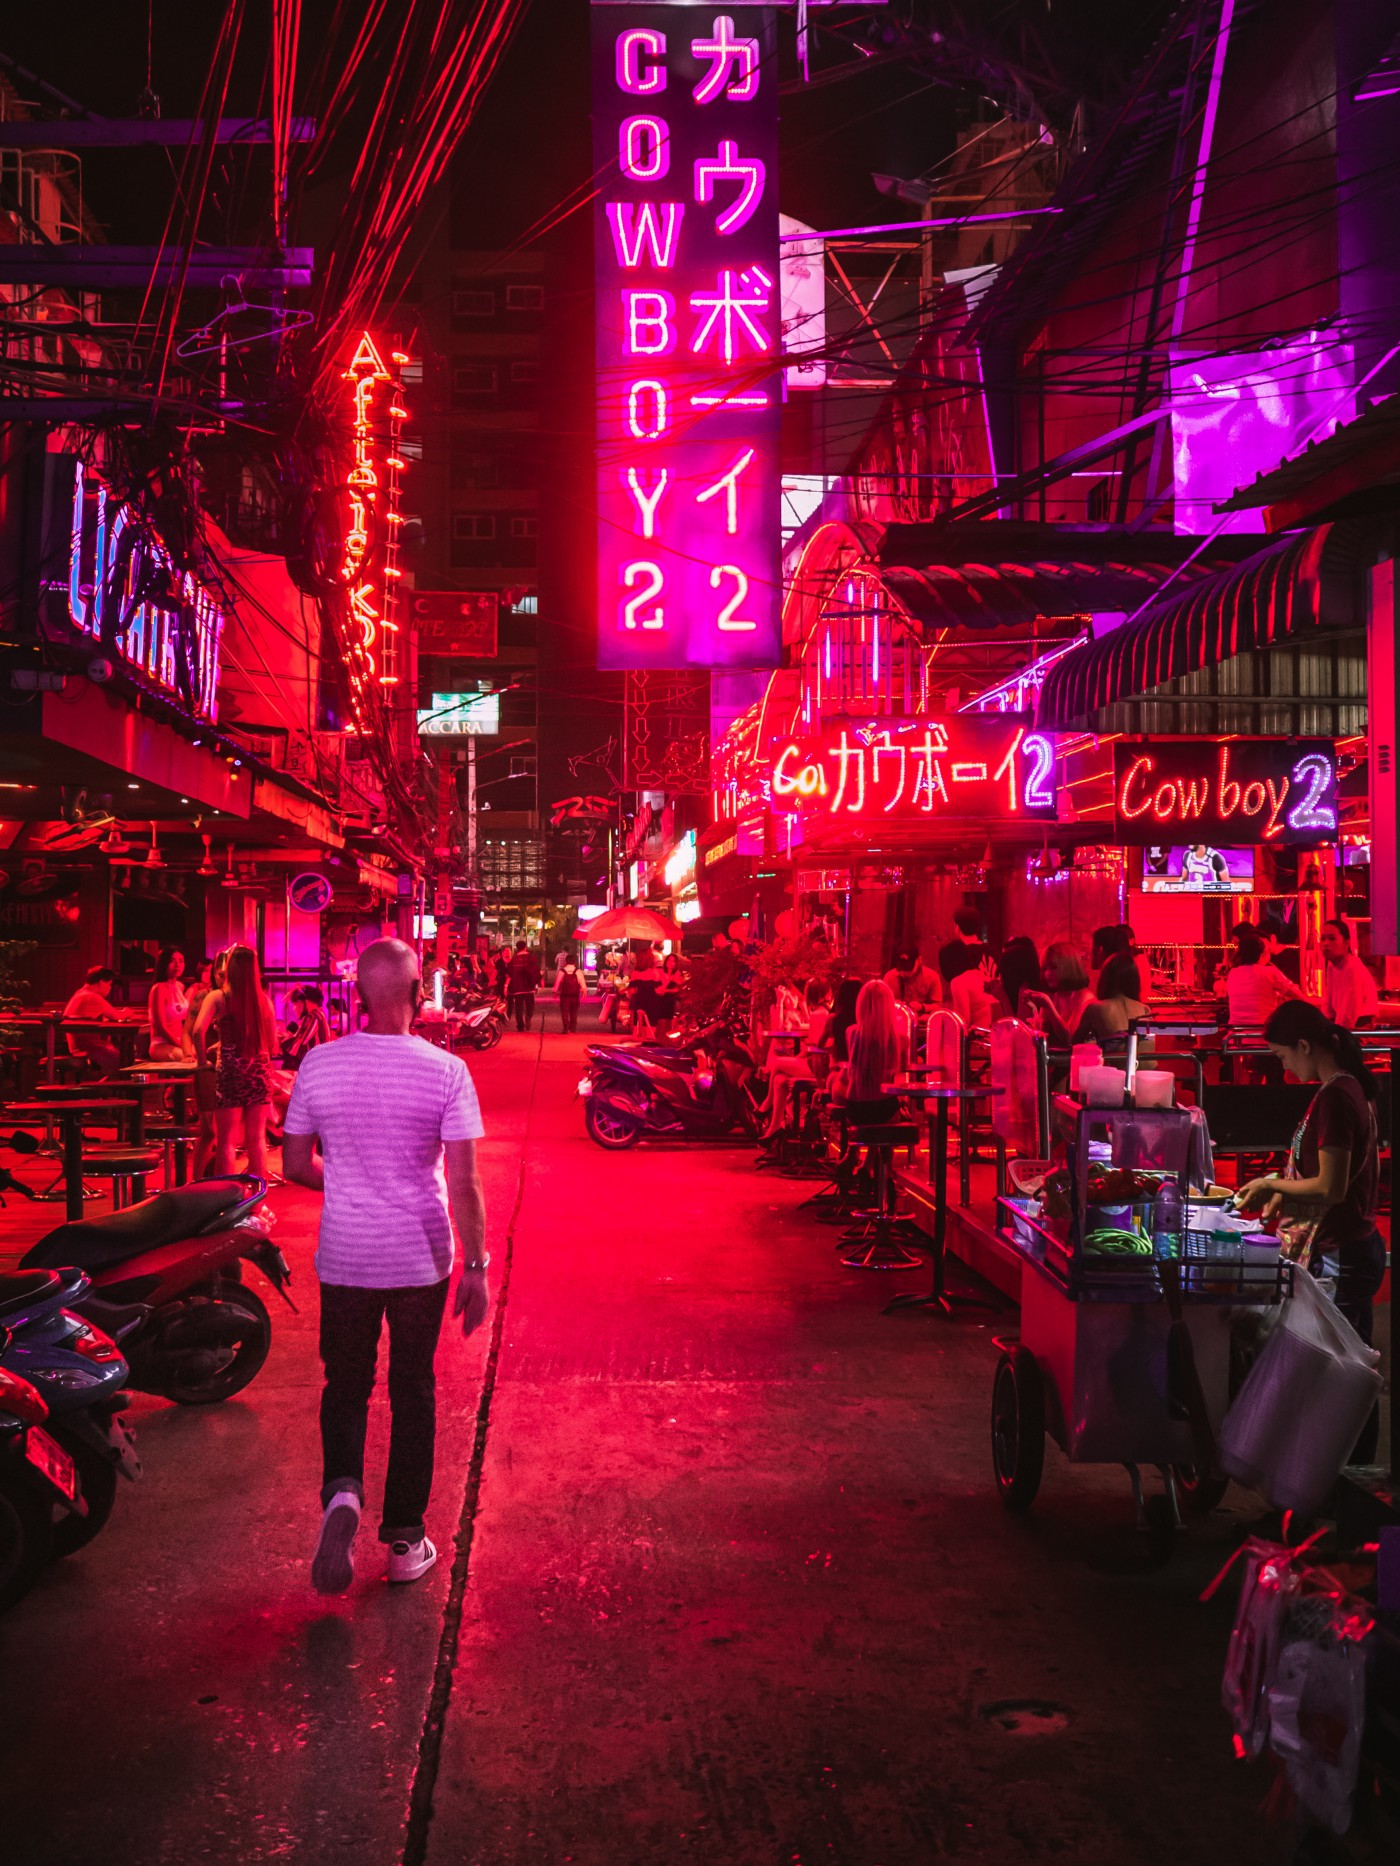 The red light district in some asian country where one could purchase sex either legally or in the grey area